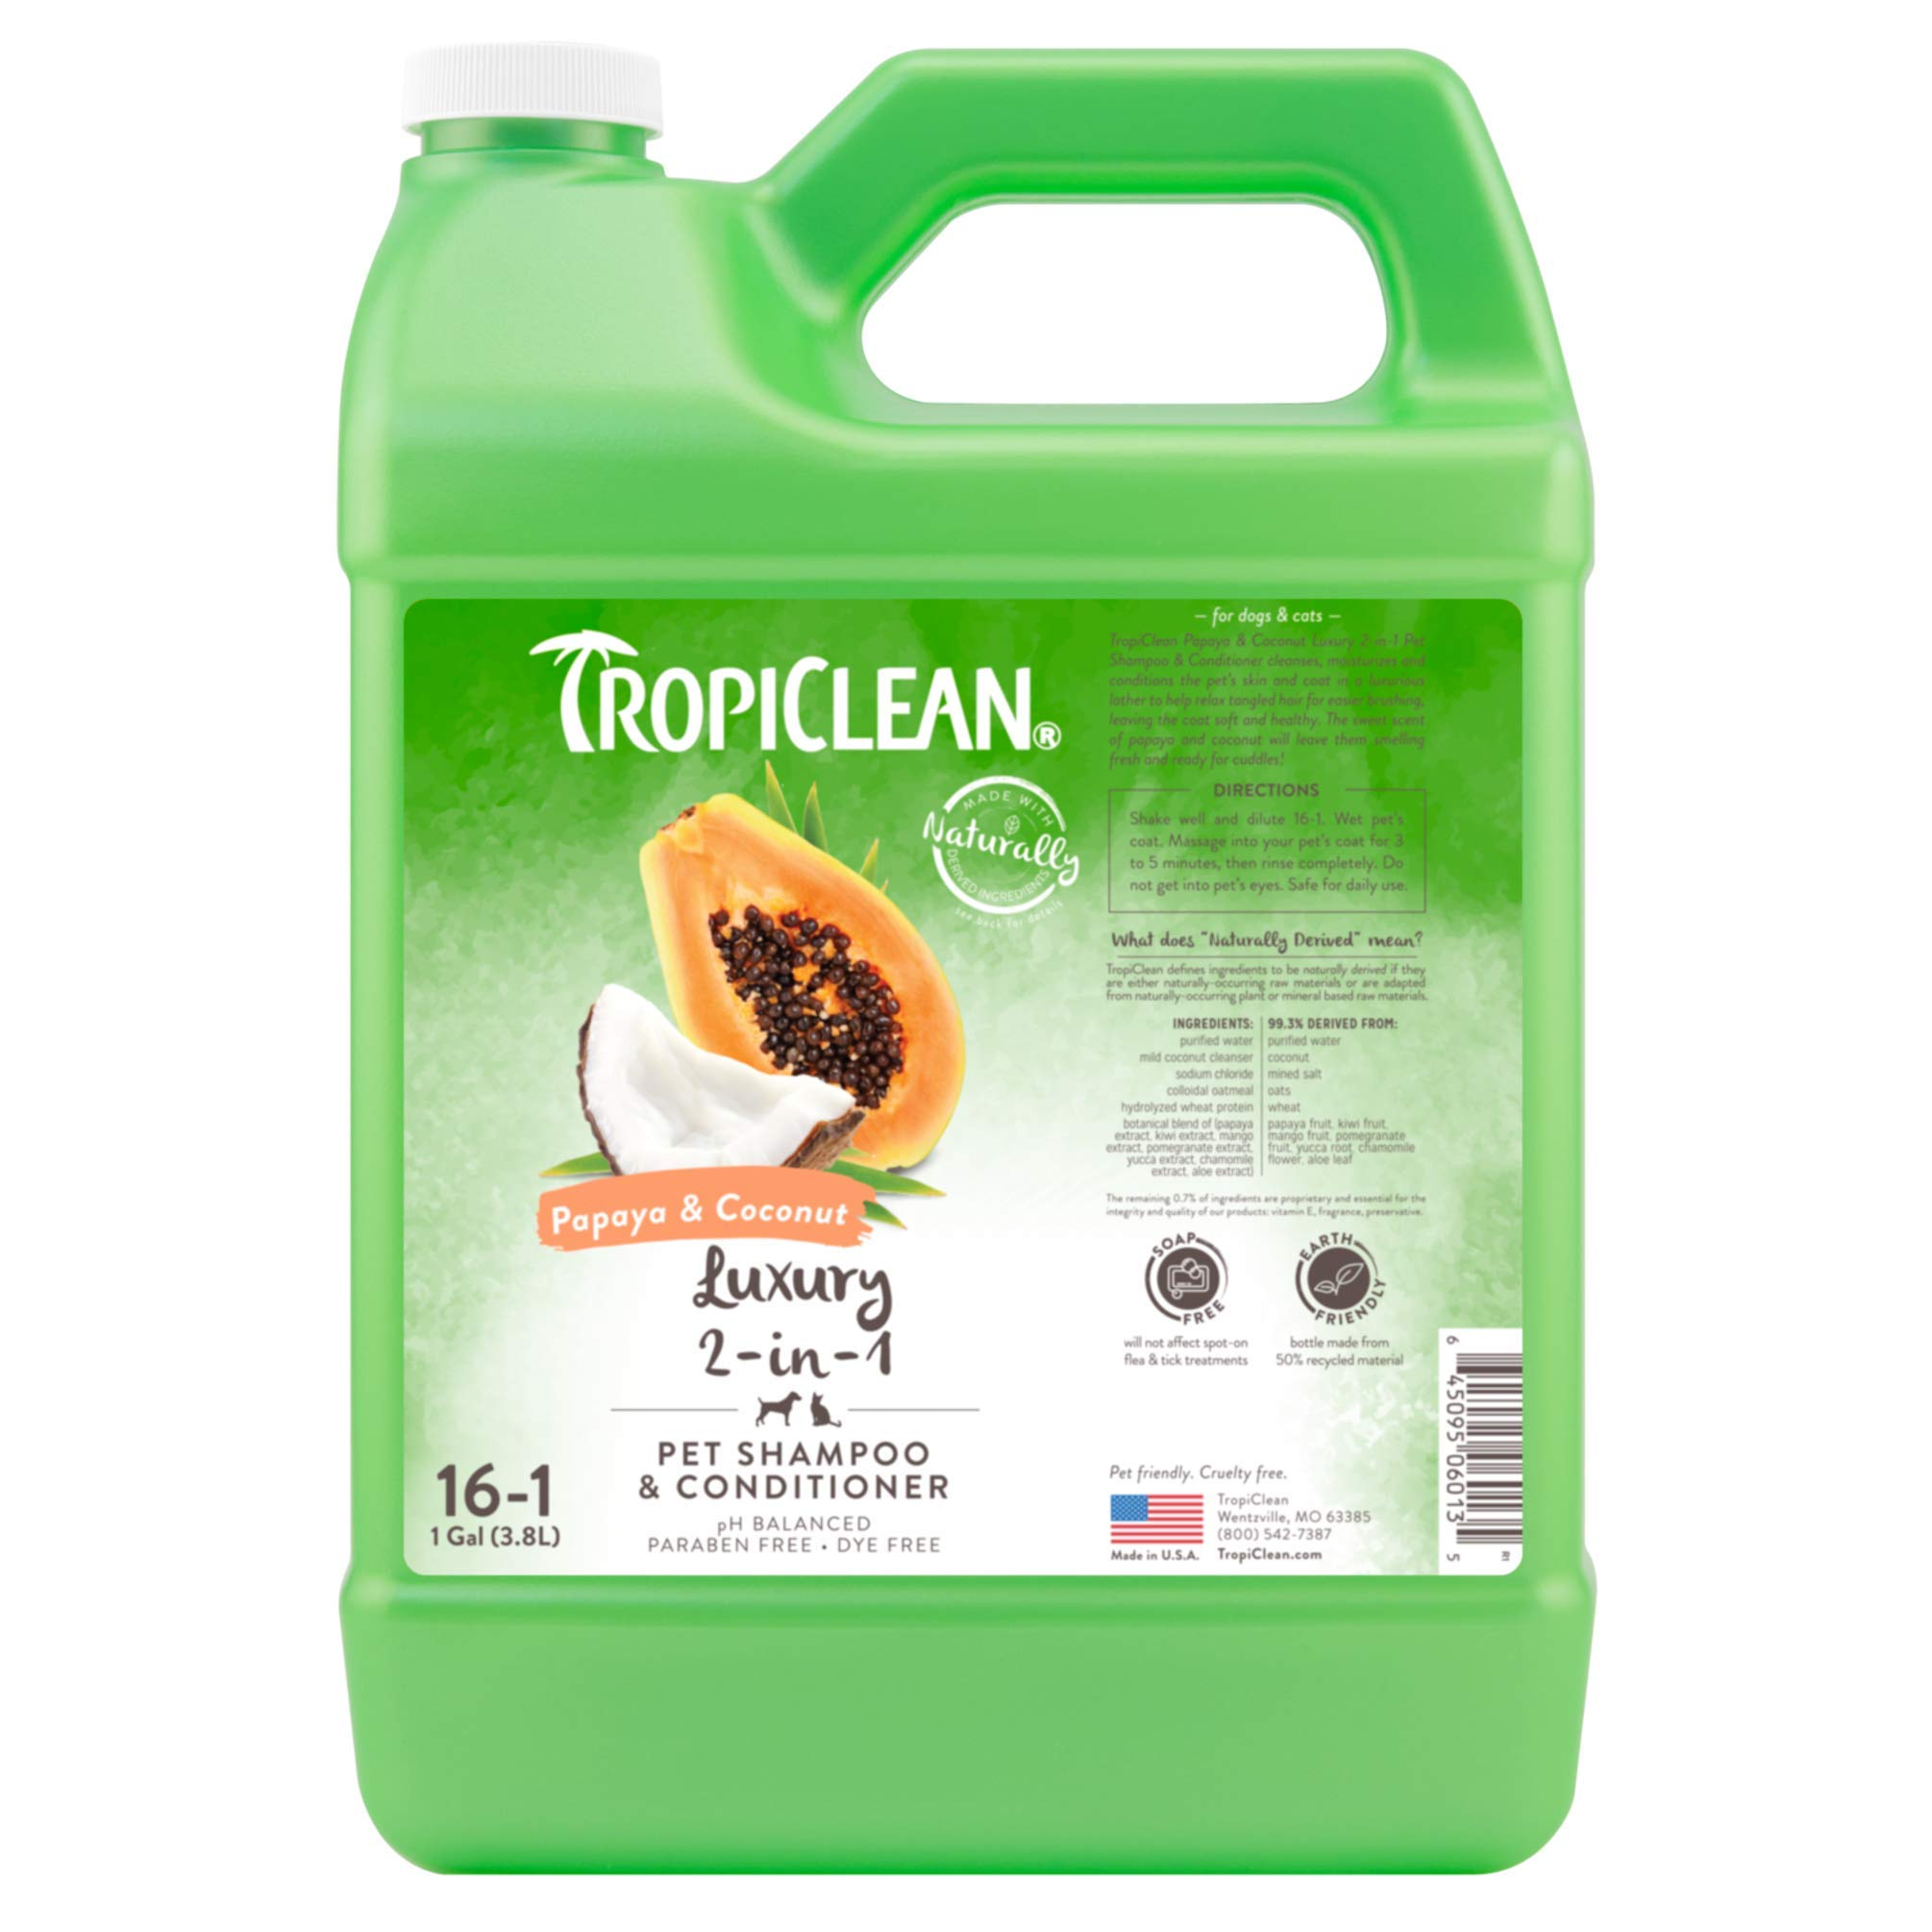 TropiClean Papaya & Coconut 2-in-1 Pet Shampoo, 1 Gallon by TropiClean